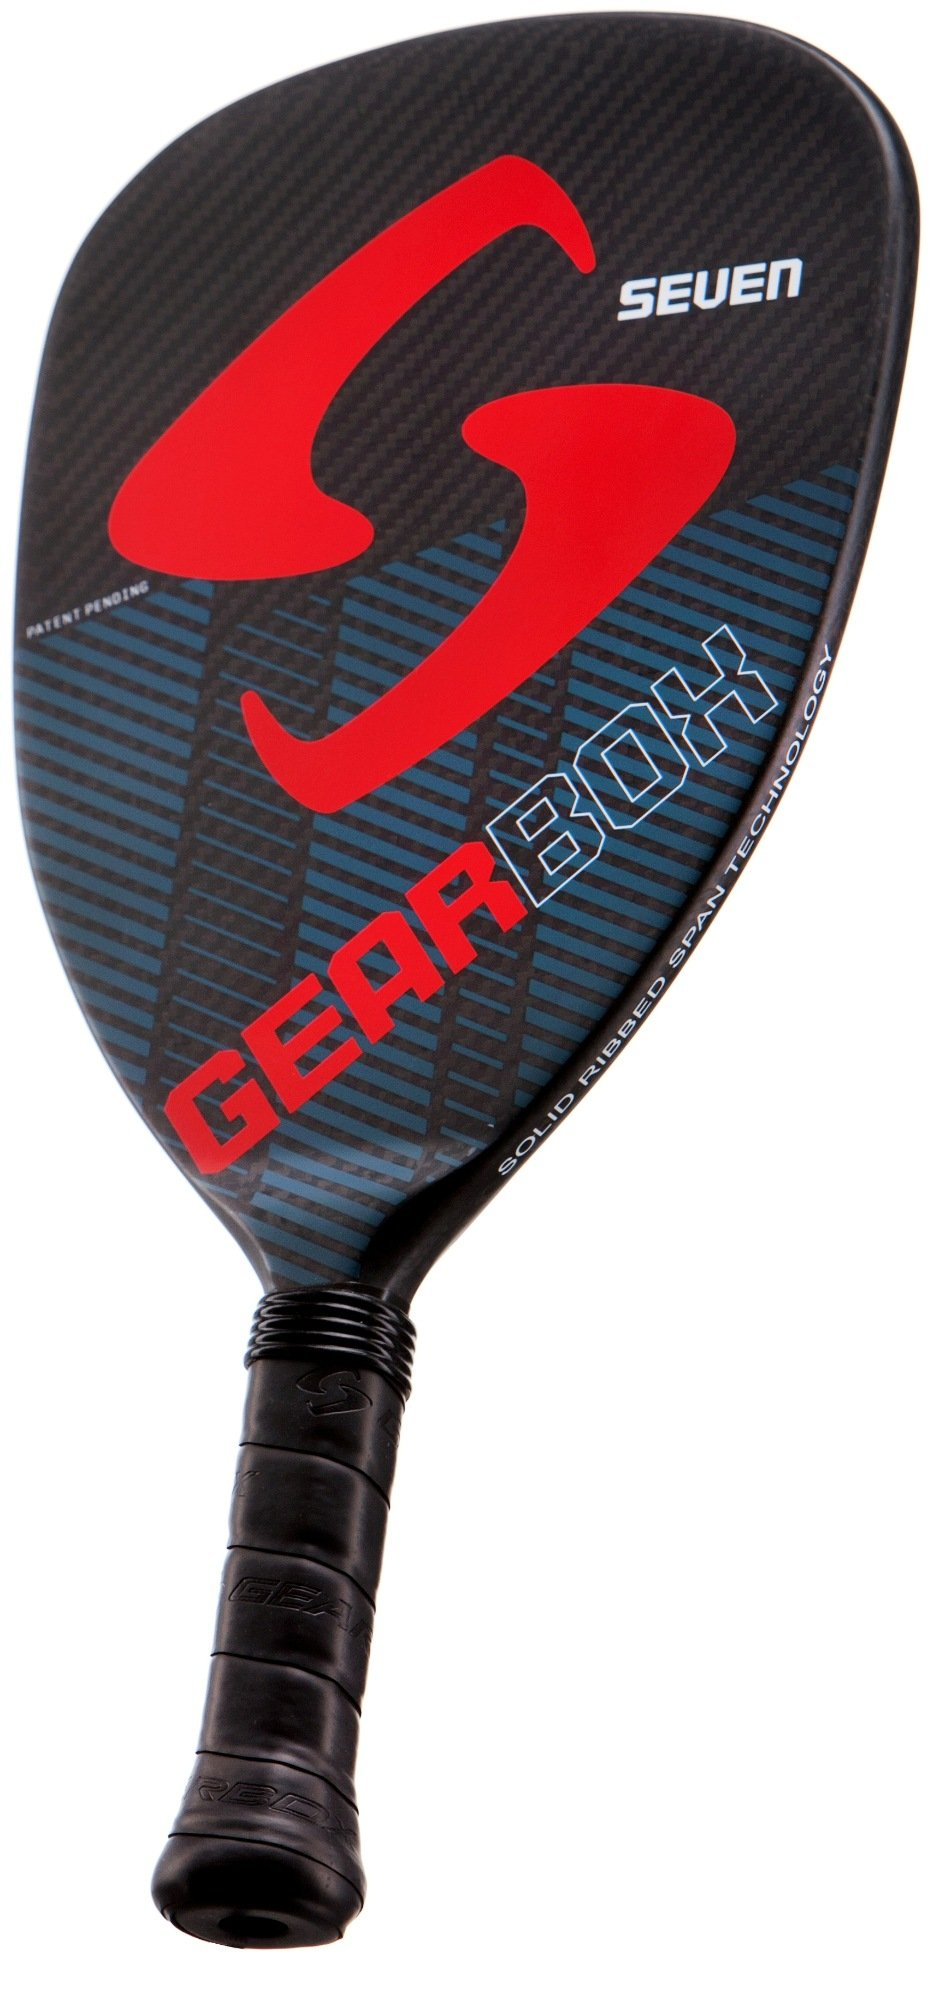 Gearbox Seven Pickleball Paddle (3-5/8 Inch) by Gearbox